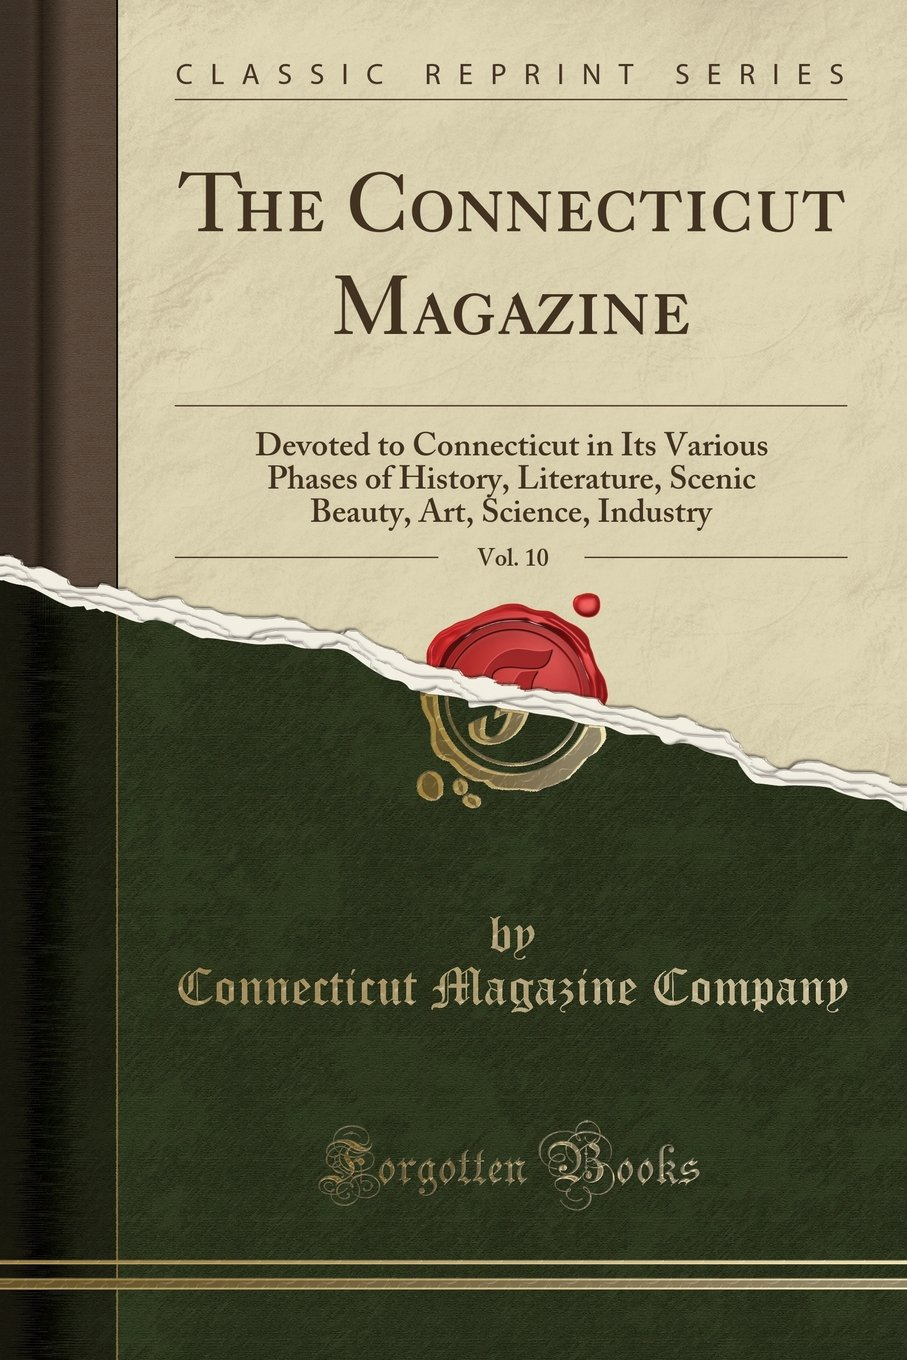 The Connecticut Magazine, Vol. 10: Devoted to Connecticut in Its Various Phases of History, Literature, Scenic Beauty, Art, Science, Industry (Classic Reprint)